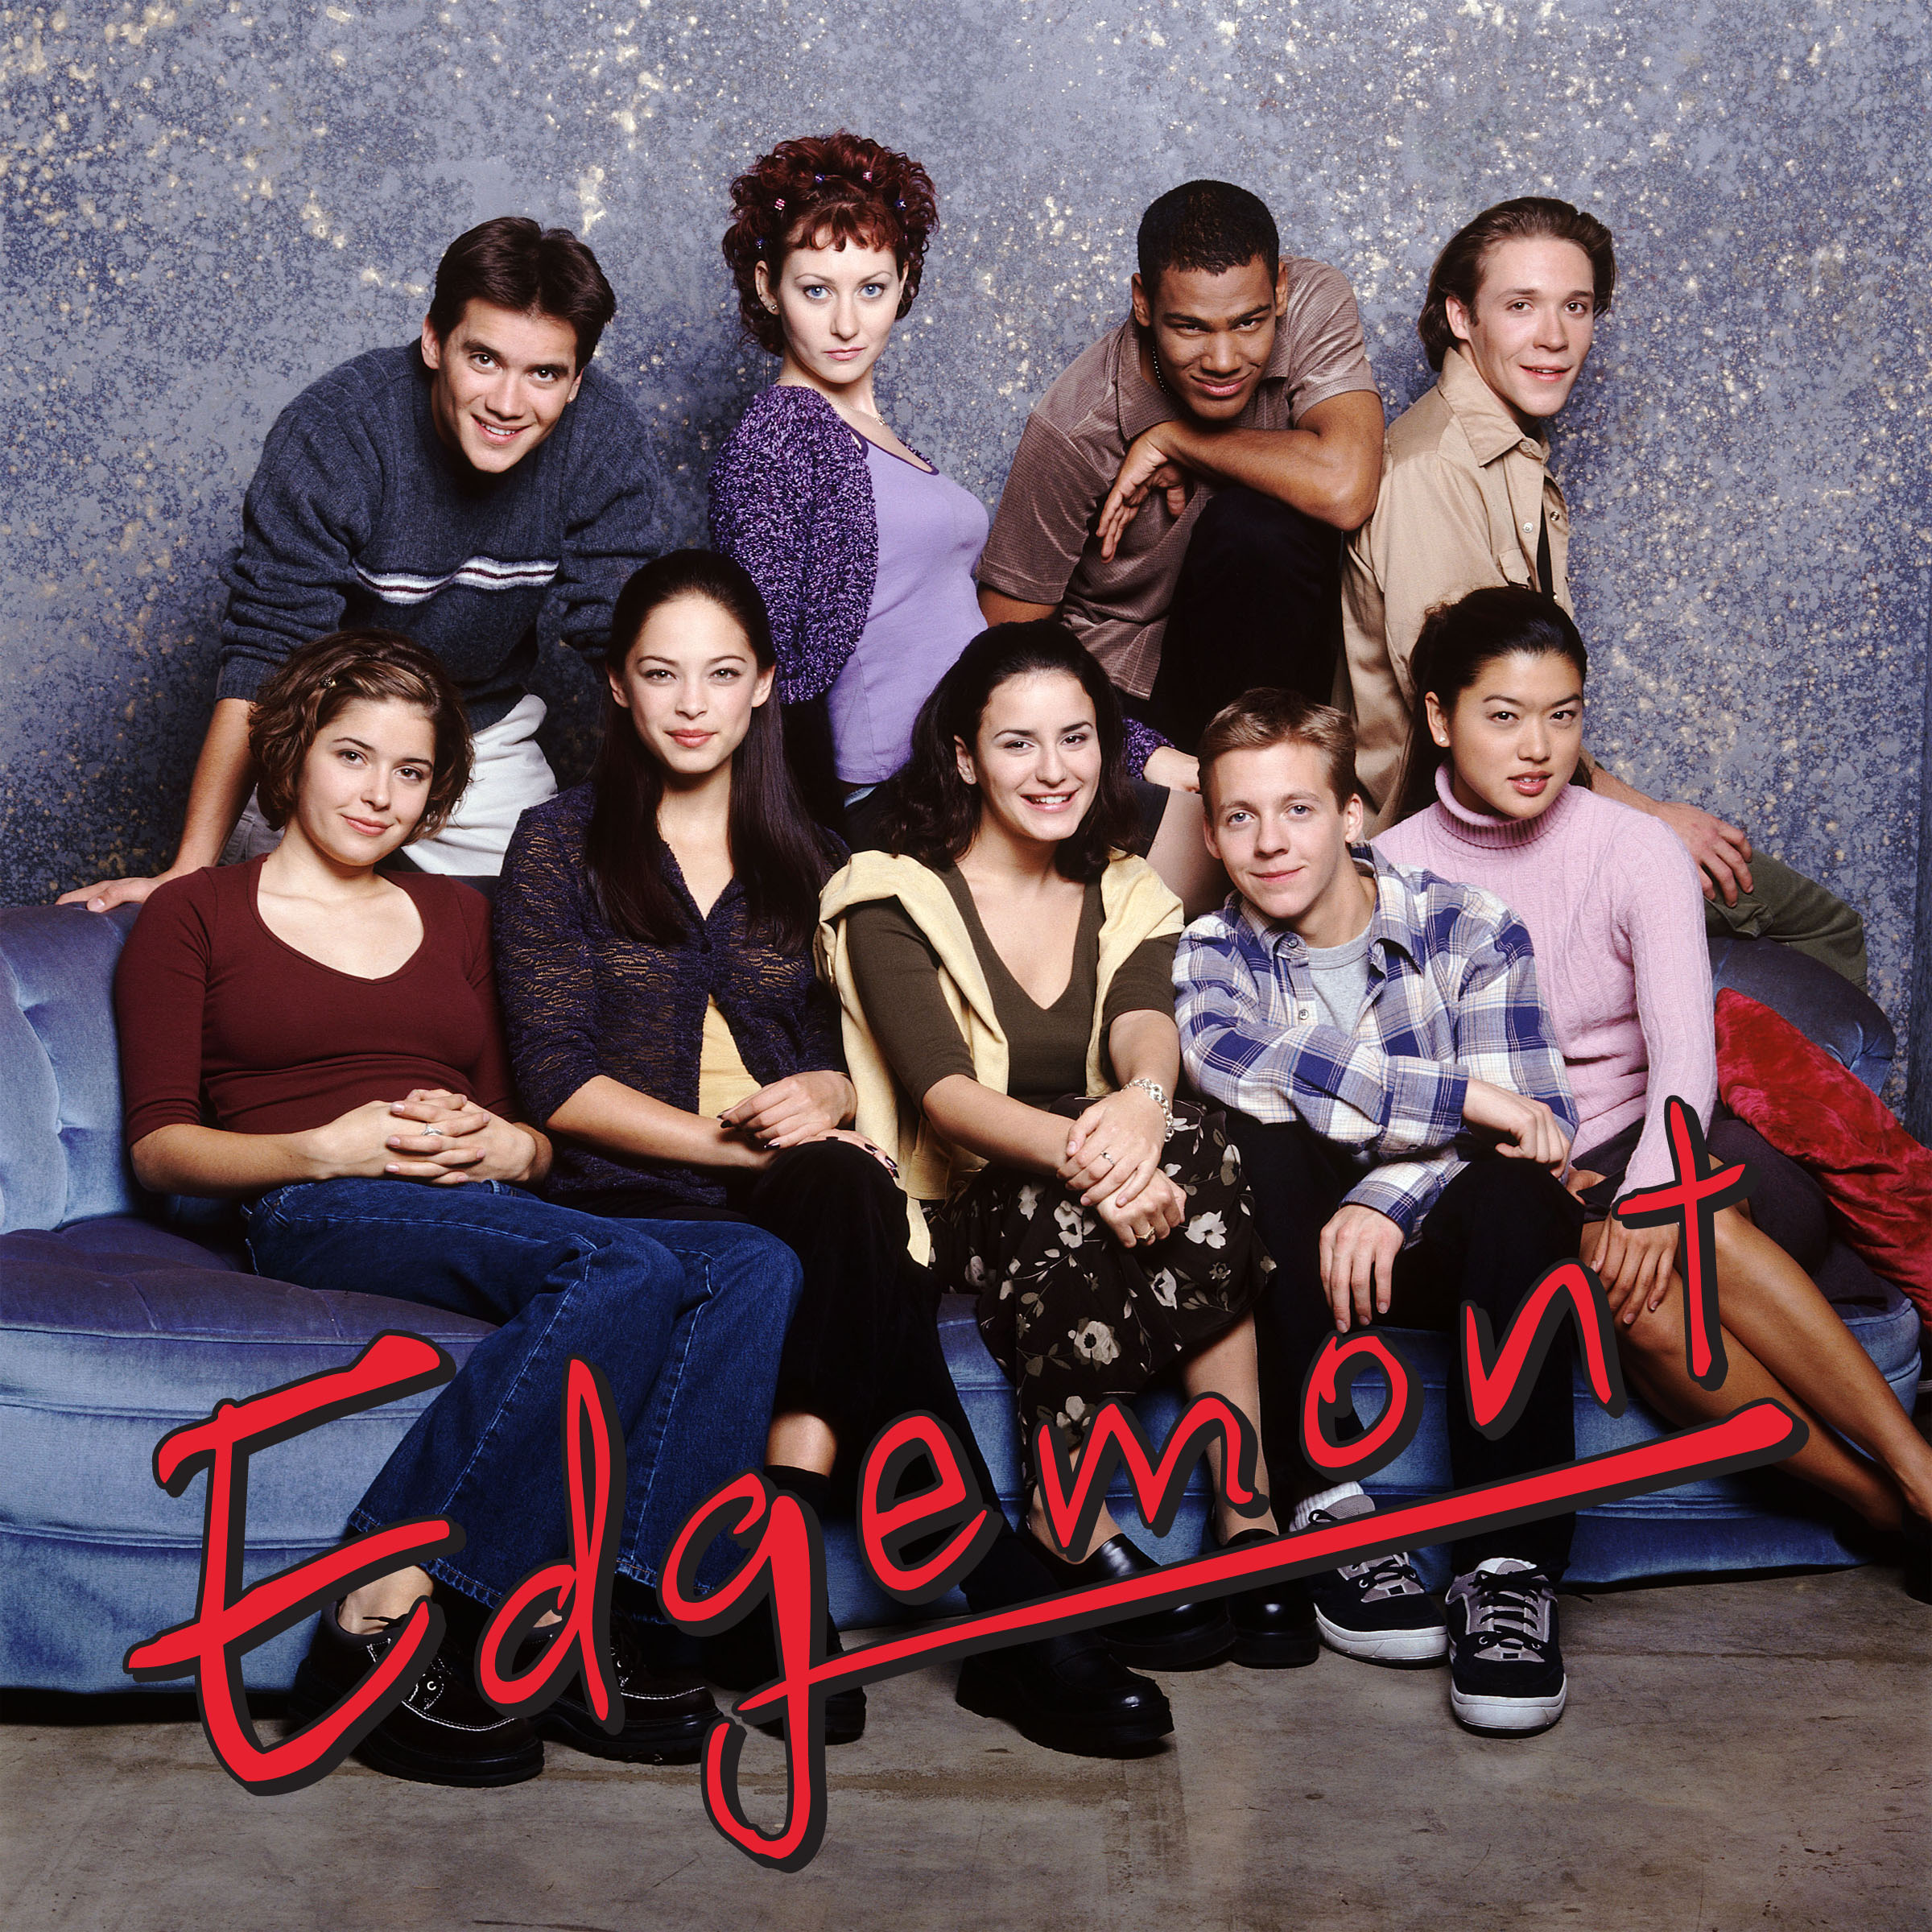 Edgemont - New Video Digital - Cinedigm Entertainment